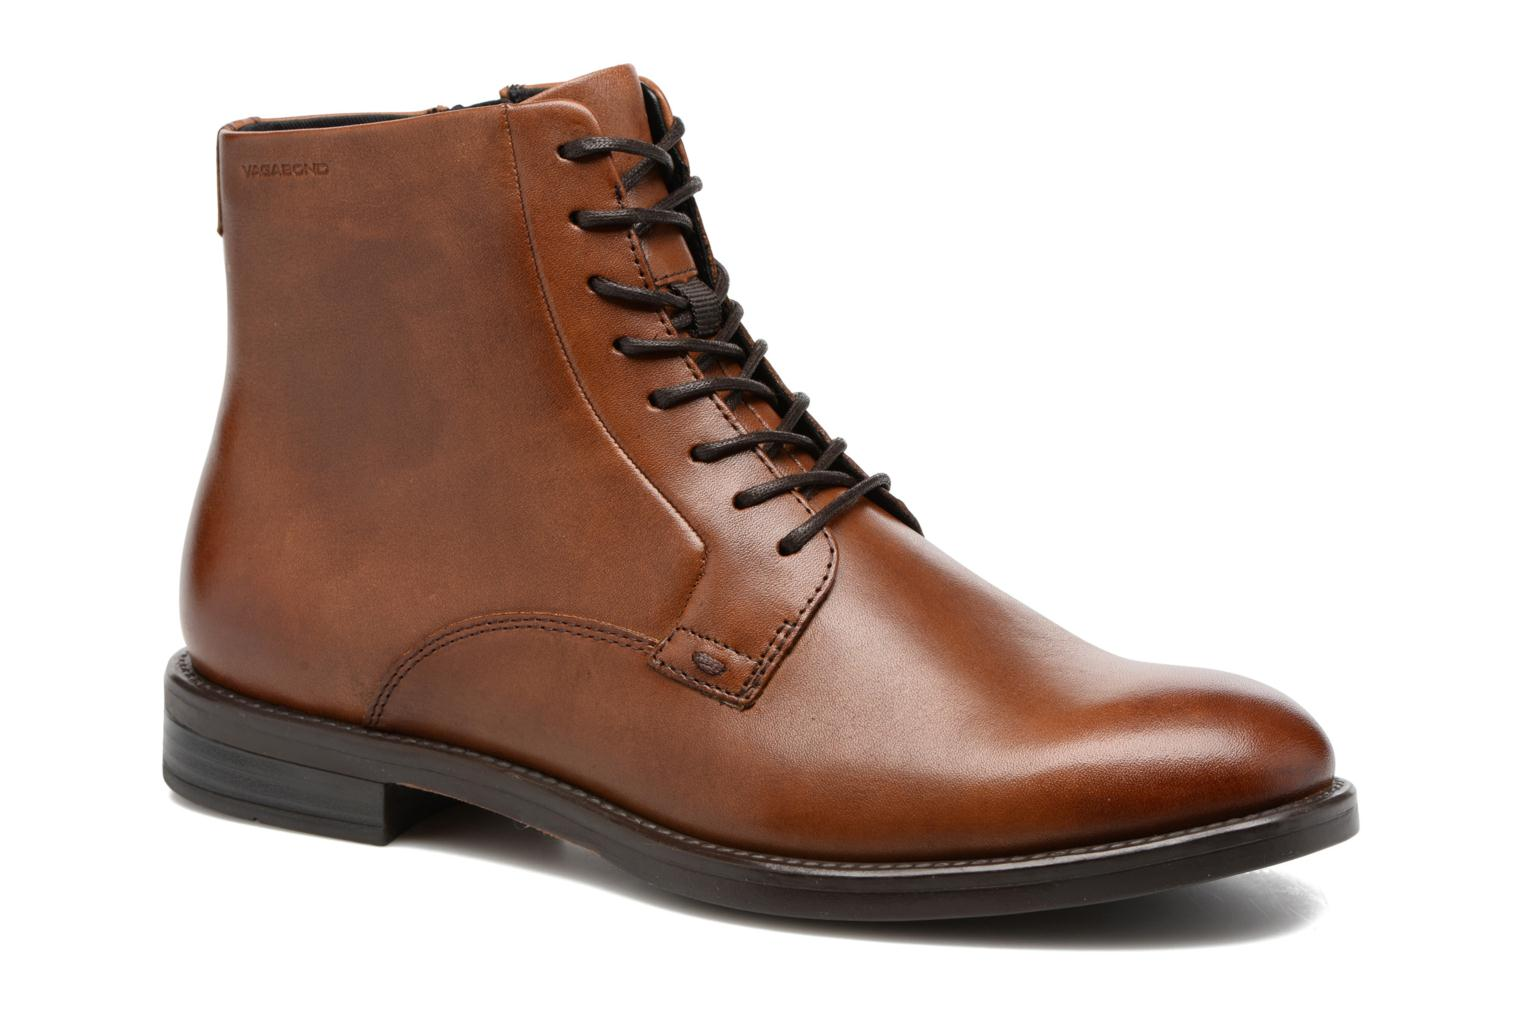 Amina 4403-301 par Vagabond Shoemakers